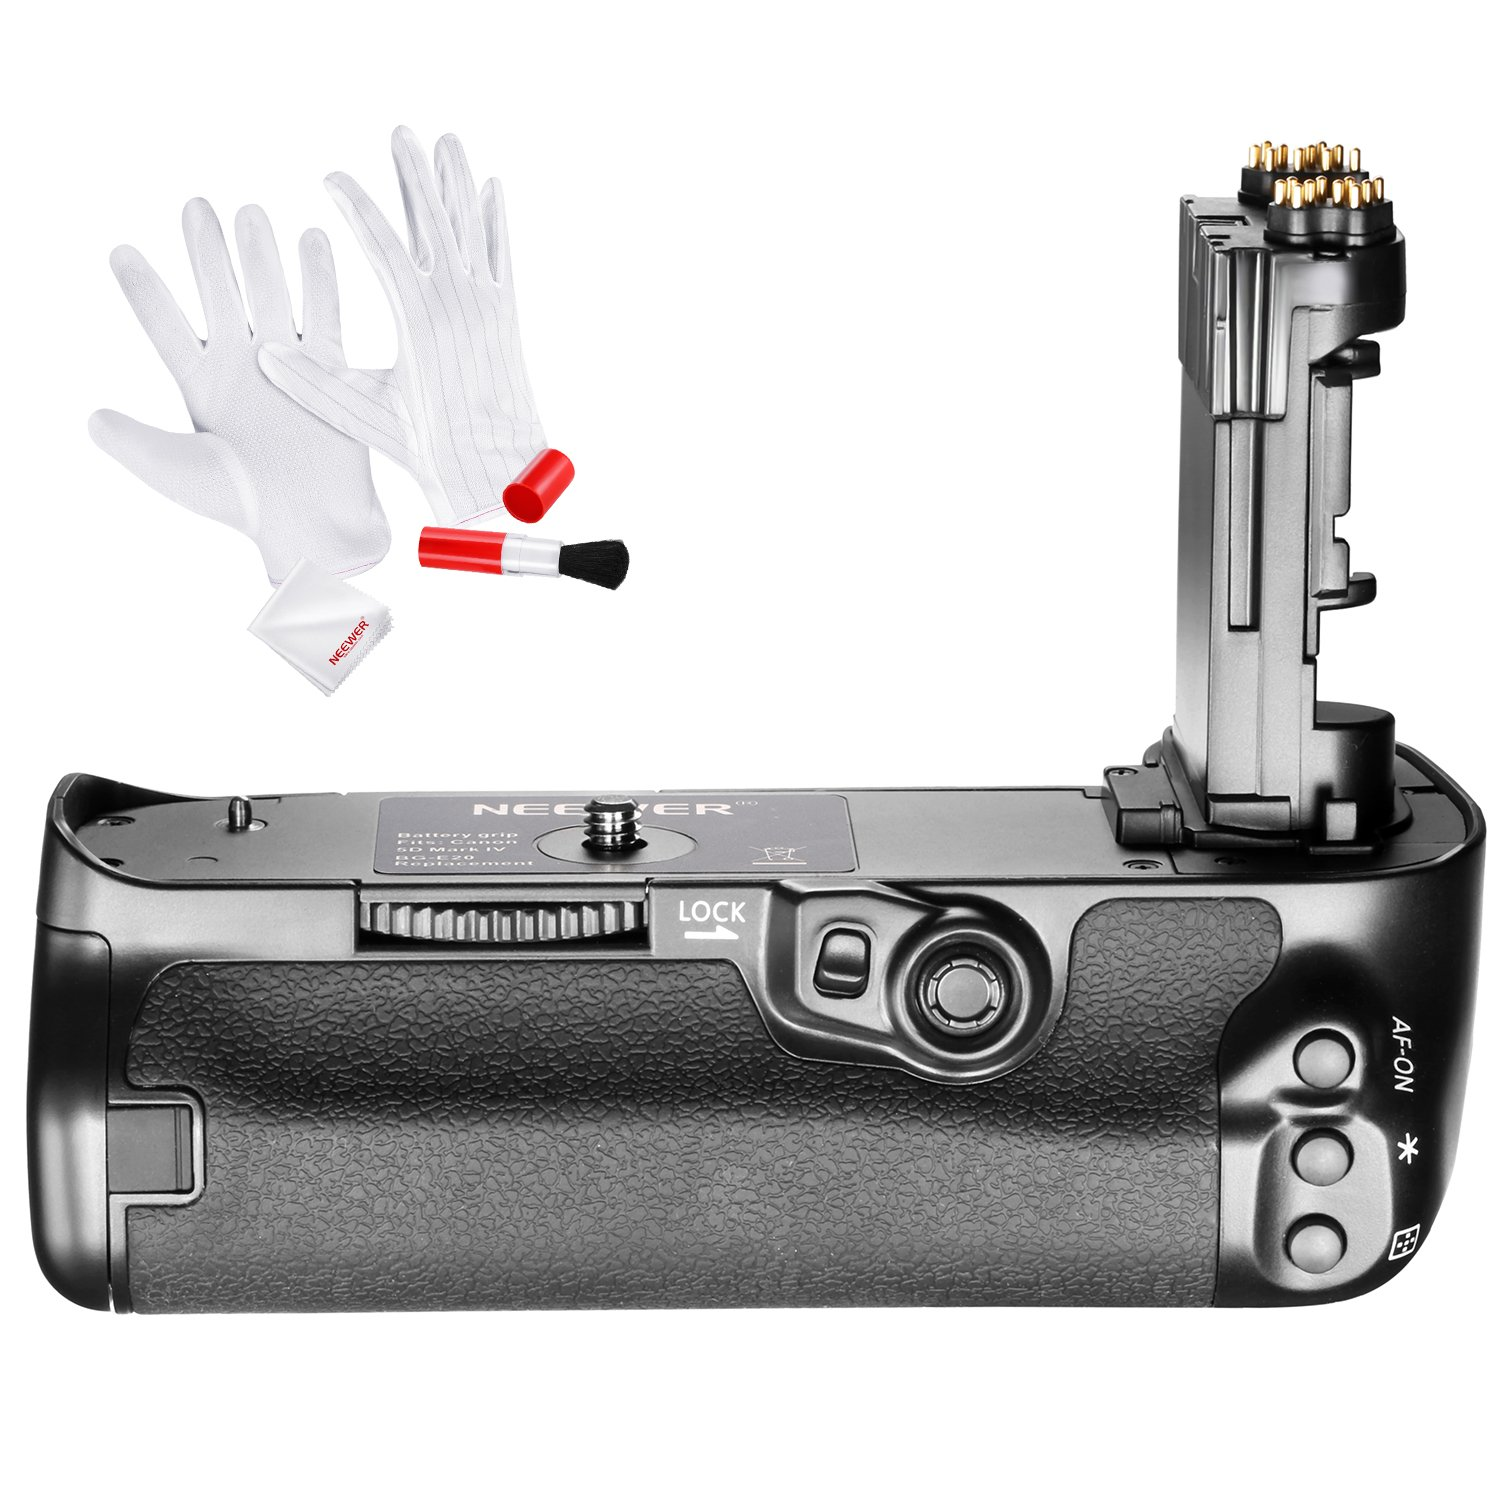 Neewer BG-E20 Replacement Battery Grip for Canon 5D Mark IV Camera, Works with LP-E6 LP-E6N Batteries, Comes with 3-IN-1 Cleaning Kit (Anti-static Gloves, Lens Brush, Microfiber Cleaning Cloth) by Neewer